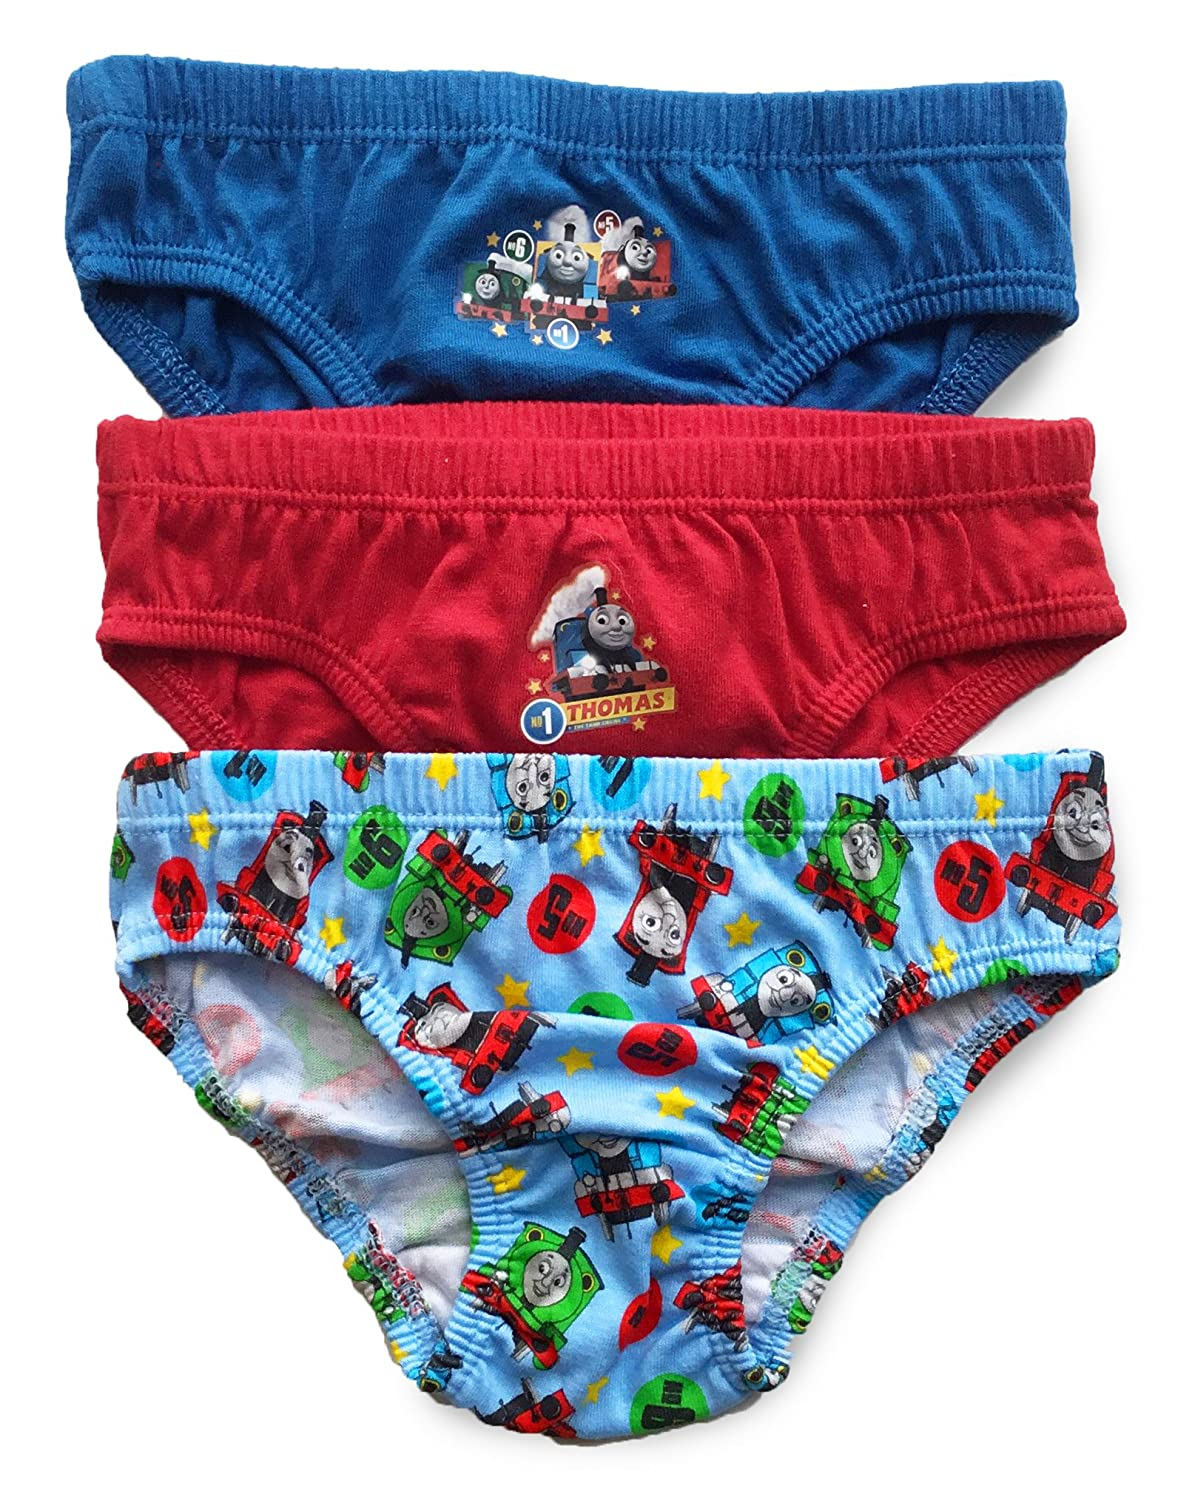 Boys Thomas Pants Briefs Slips Underwear Cotton - Pack of 3 Multi)